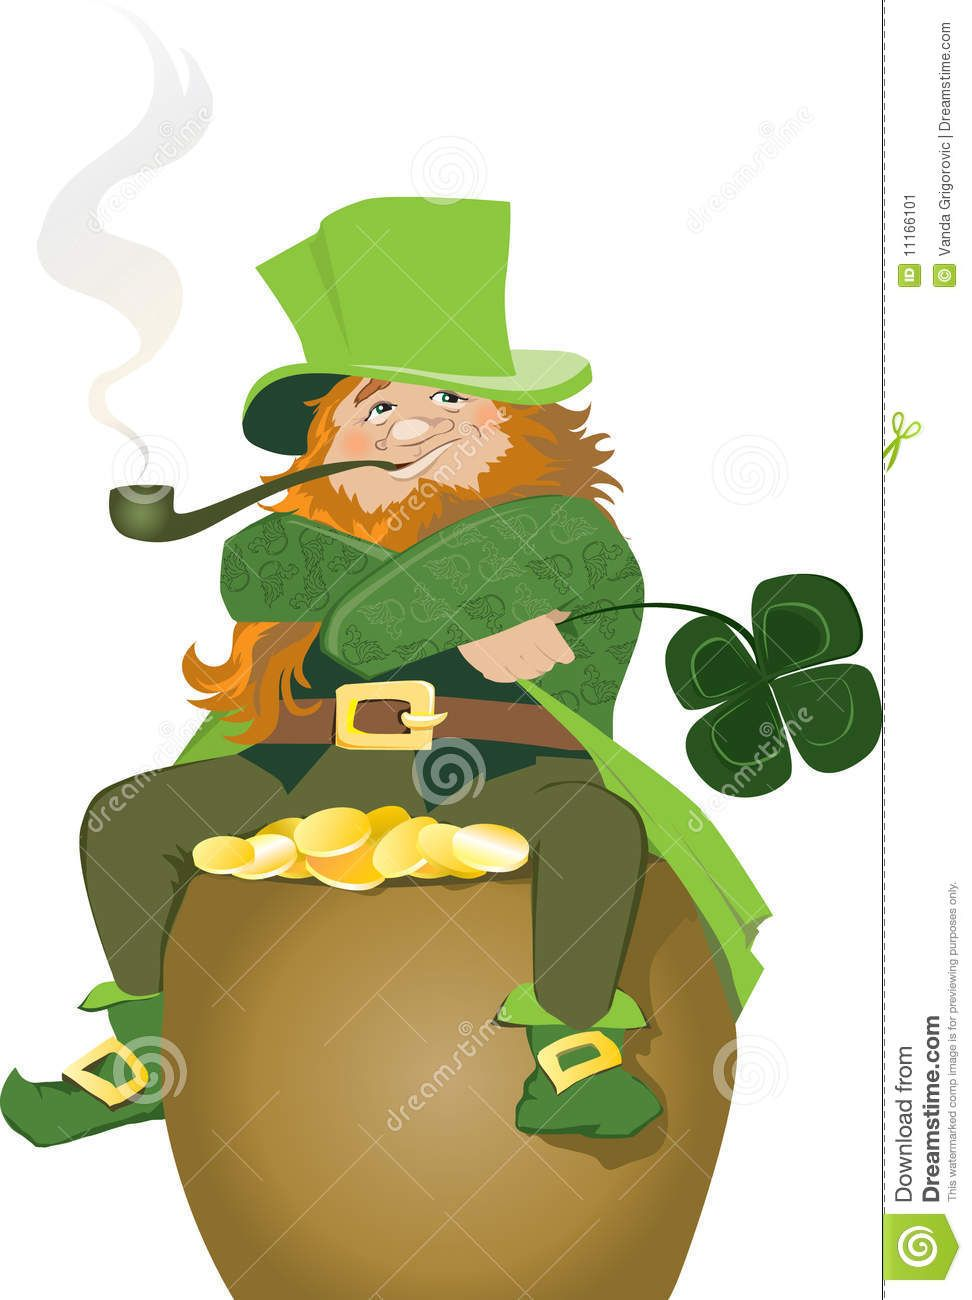 what up st paddys pinterest